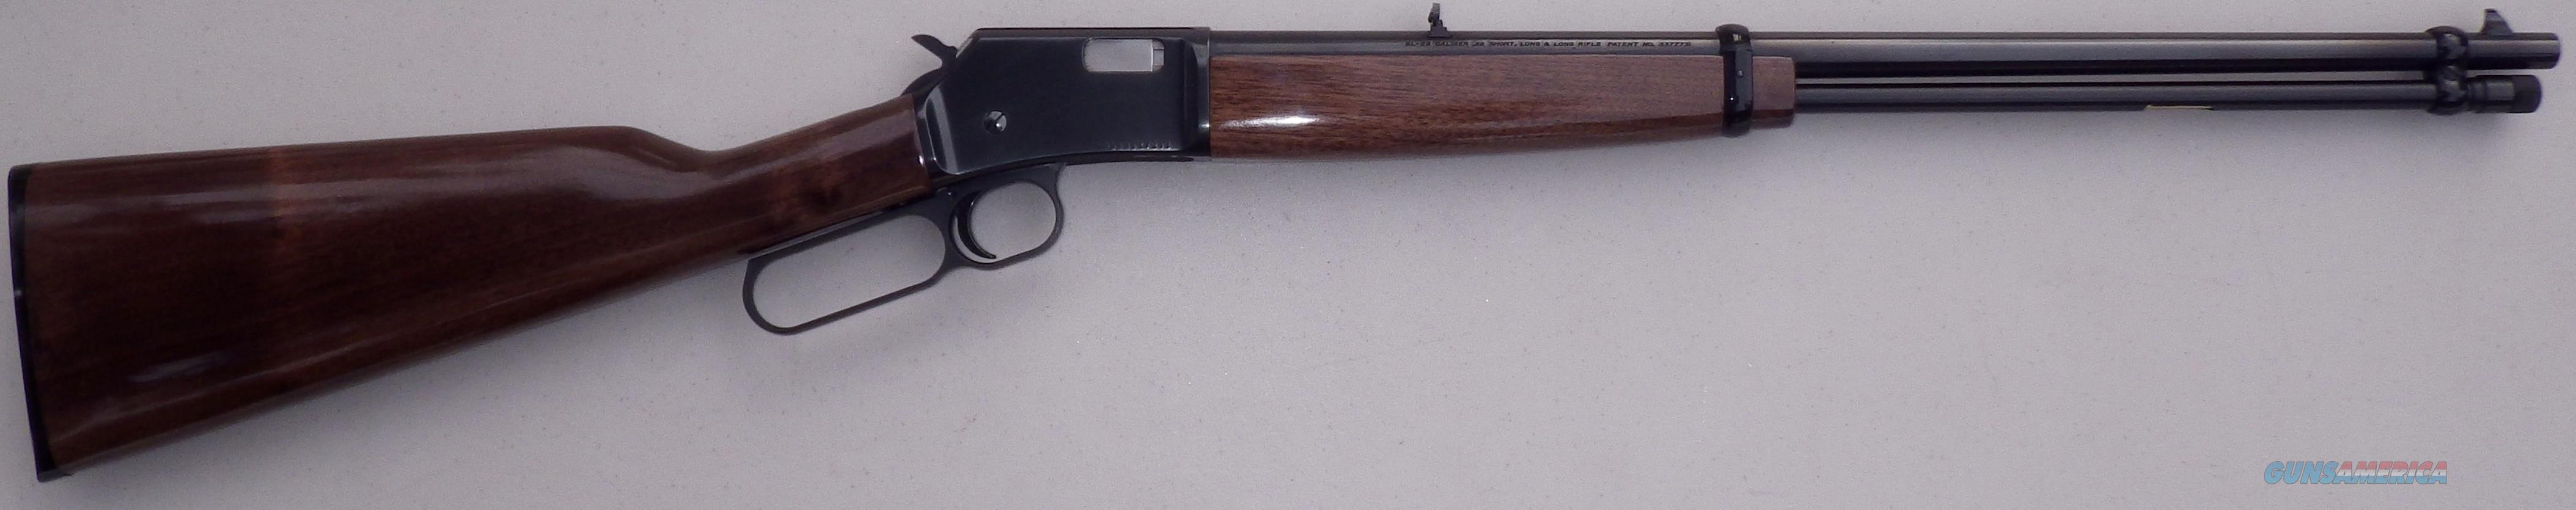 Browning BL-22 .22 LR (S/L/LR), 20-inch, 13.4 LOP, new condition  Guns > Rifles > Browning Rifles > Lever Action